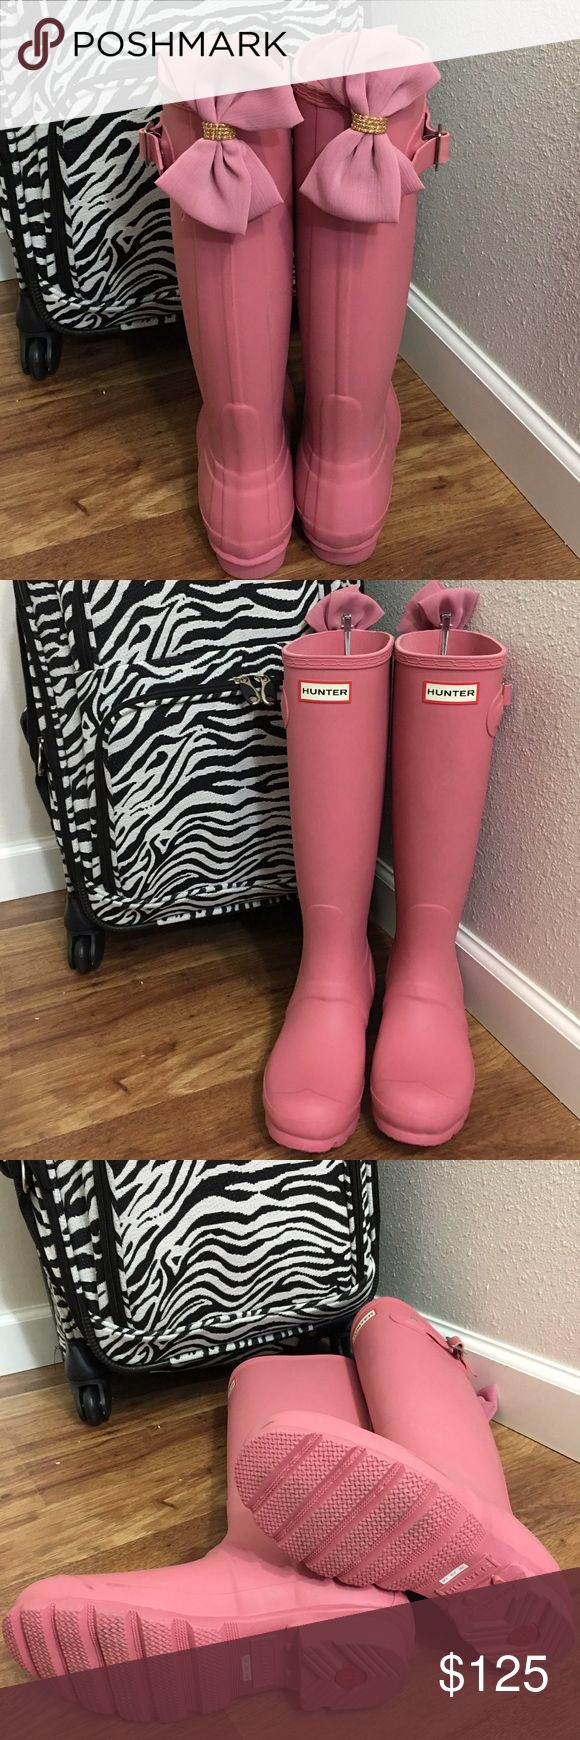 Rare Rhondite Pink Hunter boots & Bow Clips Gorgeous pair of matte finish rhondite pink ladies tall Wellie Hunter rain boots  in size 6. Worn once for pictures and then put away. This is the prettiest blush pink to go with soft neutral tones. Perfect rose shabby chic pink for more classy ladies. This romantic pink is no longer available in stores. These include Hard to find matching pink bow clips as FREE GIFT WITH PURCHASE!! Always open to offers sent thru offer link. Hunter Shoes Winter…